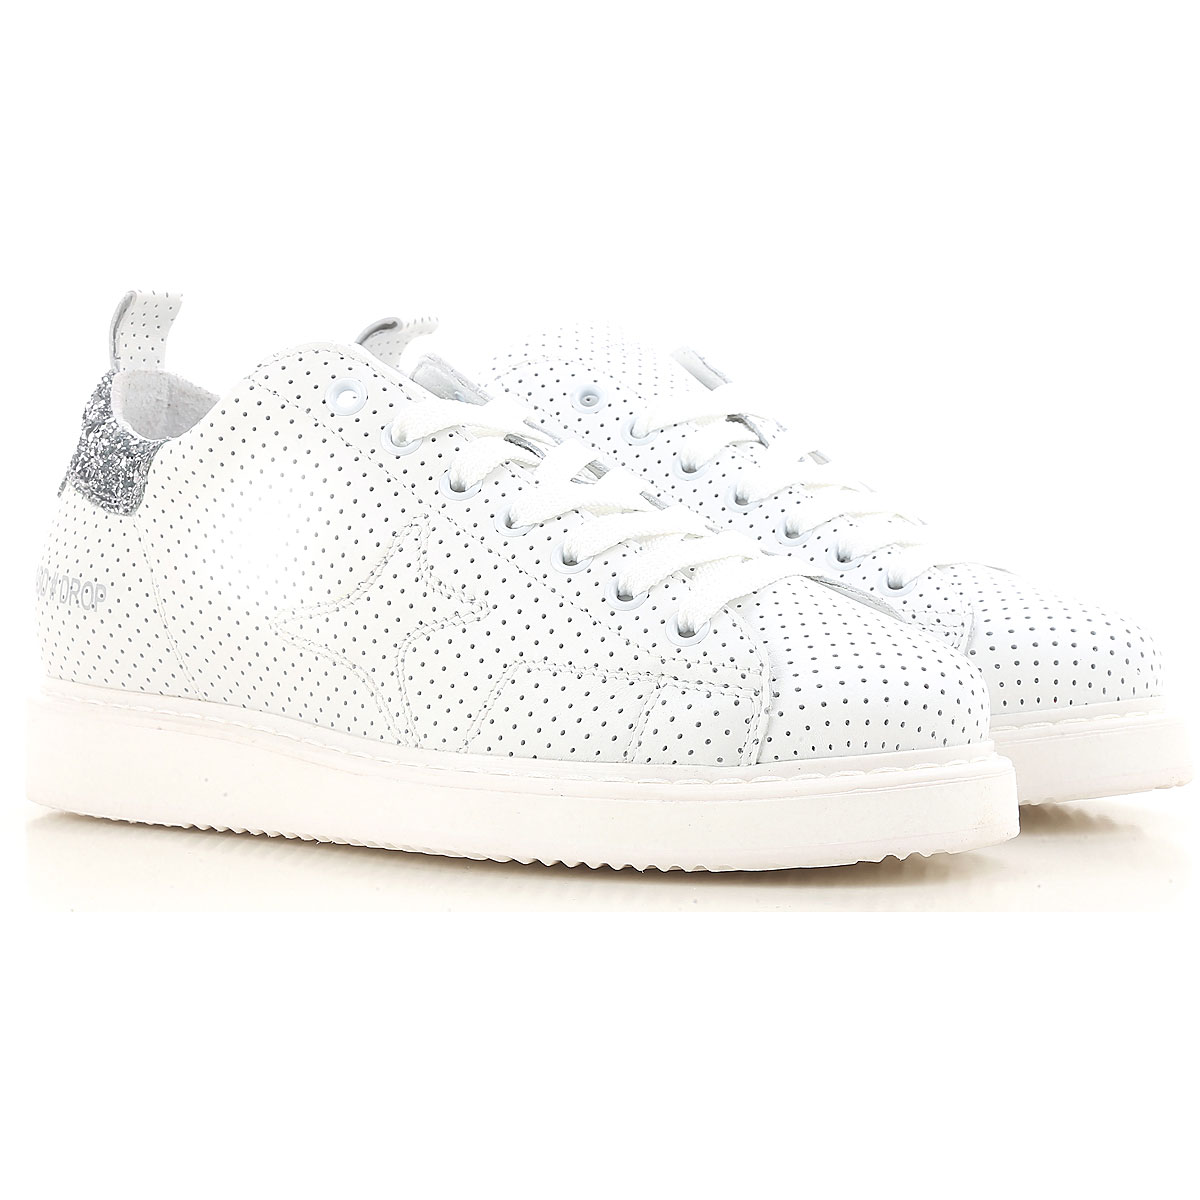 Image of Ama Brand Sneakers for Women On Sale, White, Leather, 2017, EUR 36 - UK 3 - USA 5.5 EUR 40 - UK 7 - USA 9.5